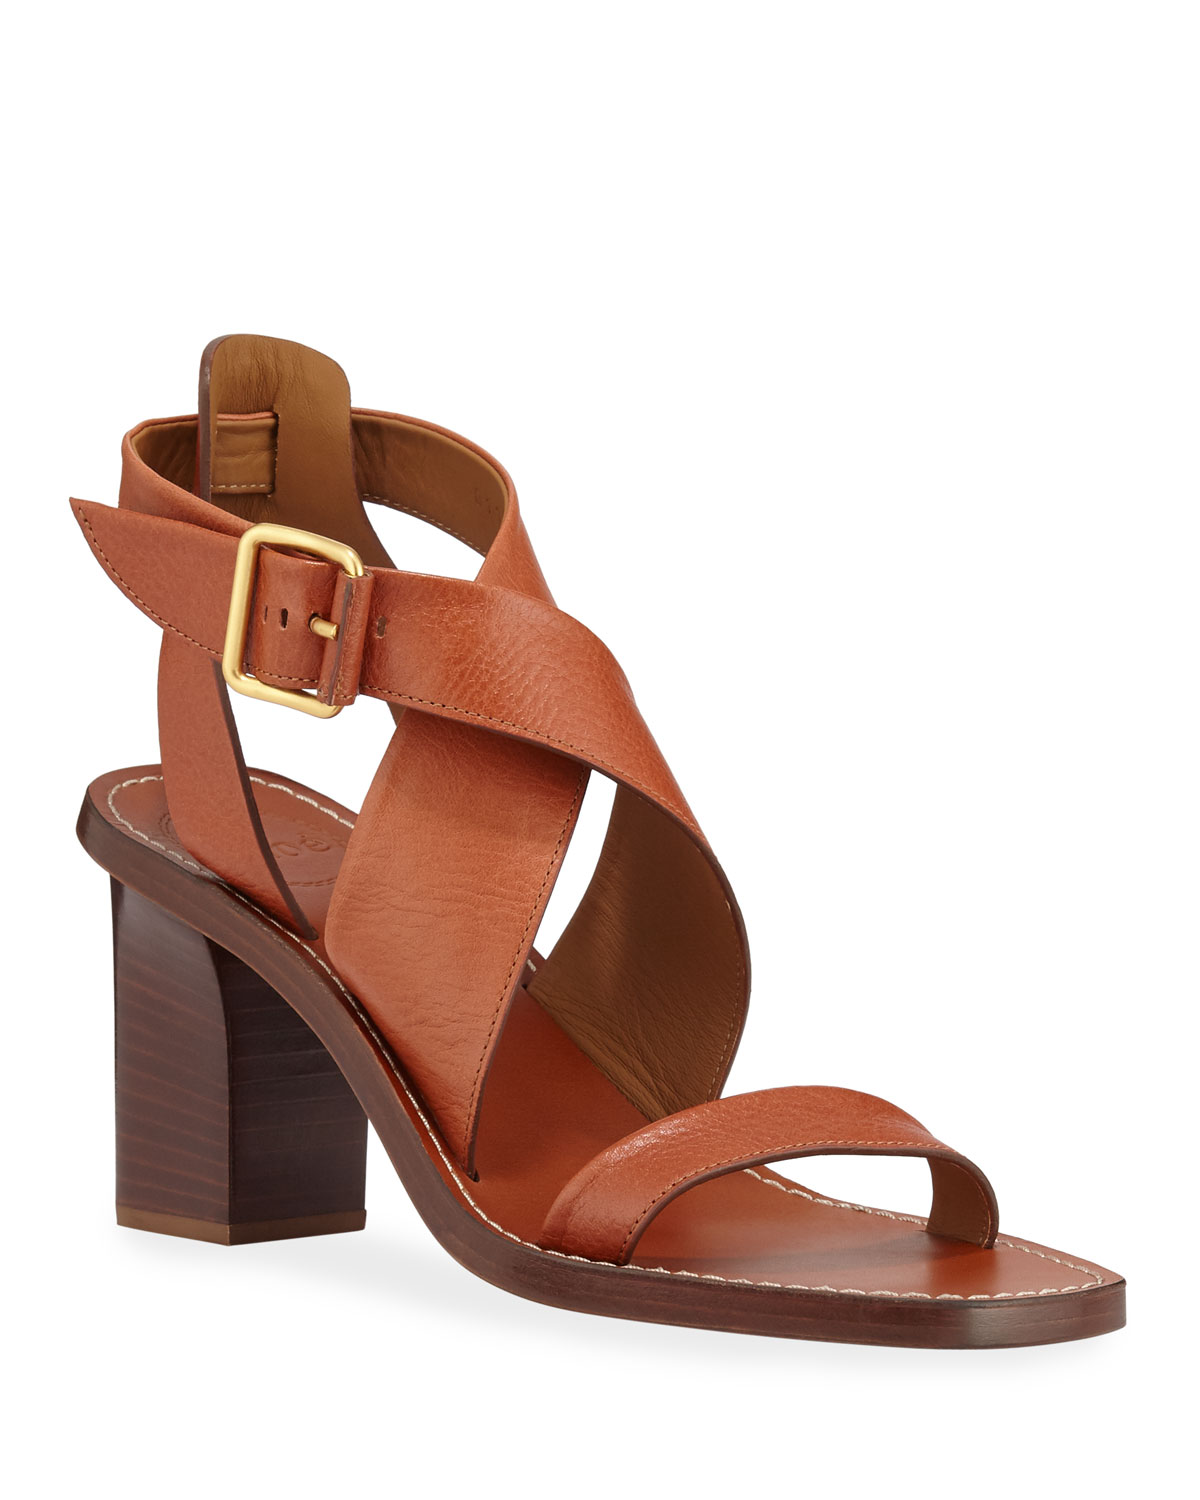 291aefd2bb Chloe Virginia Strappy Leather Block-Heel Sandals | Neiman Marcus